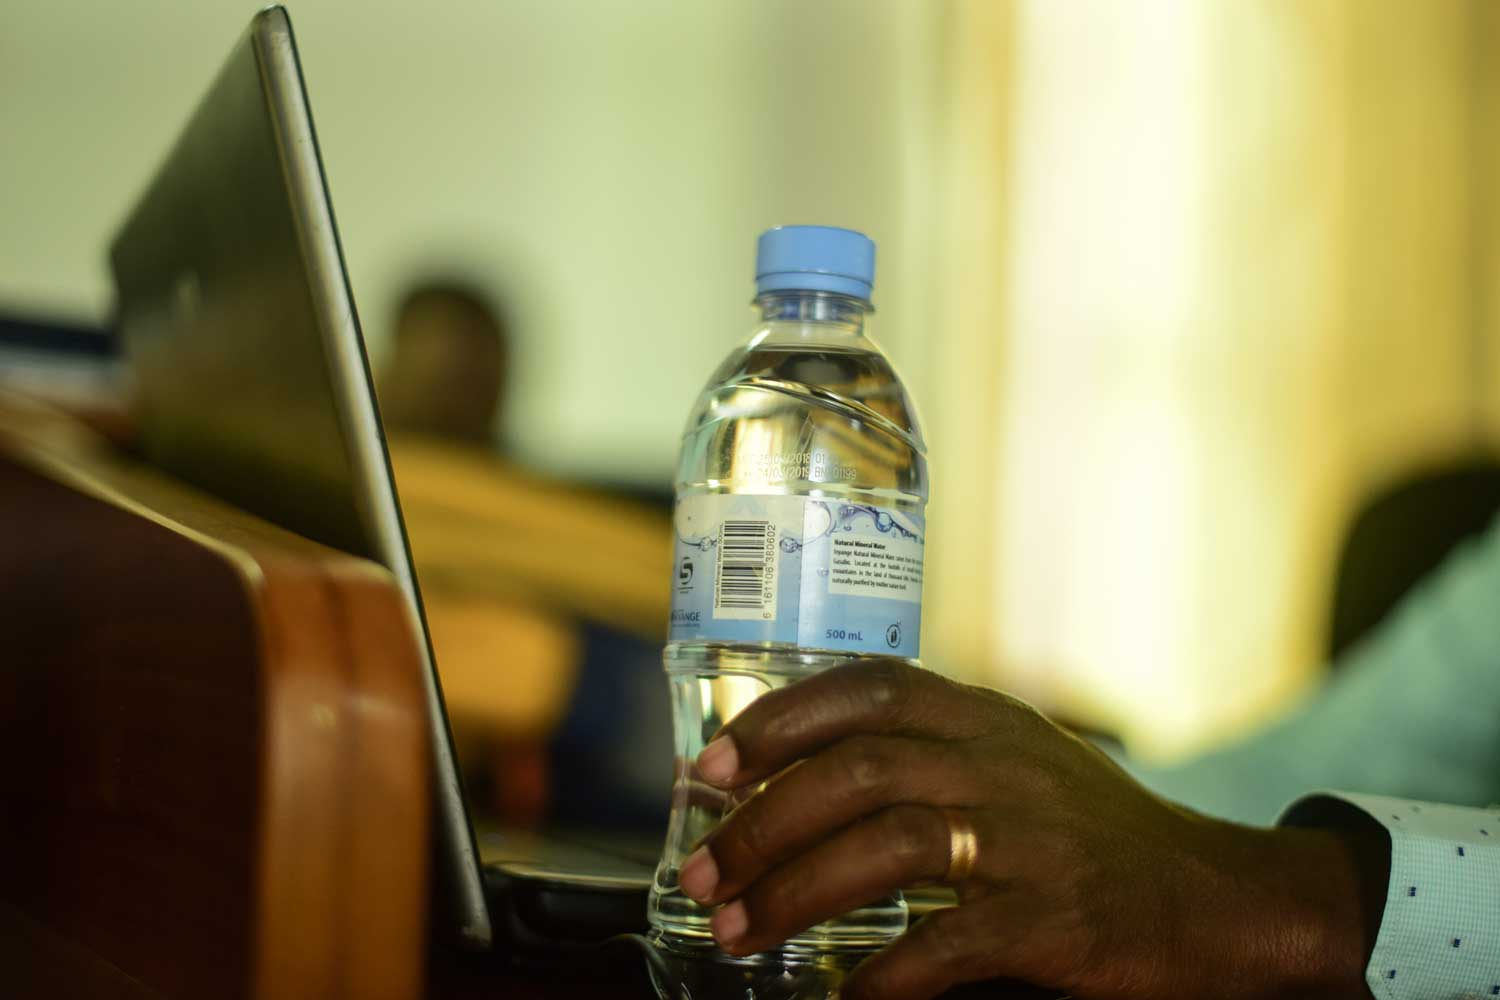 Rwanda Moves to Ban Use of Plastic Water Bottles in Offices